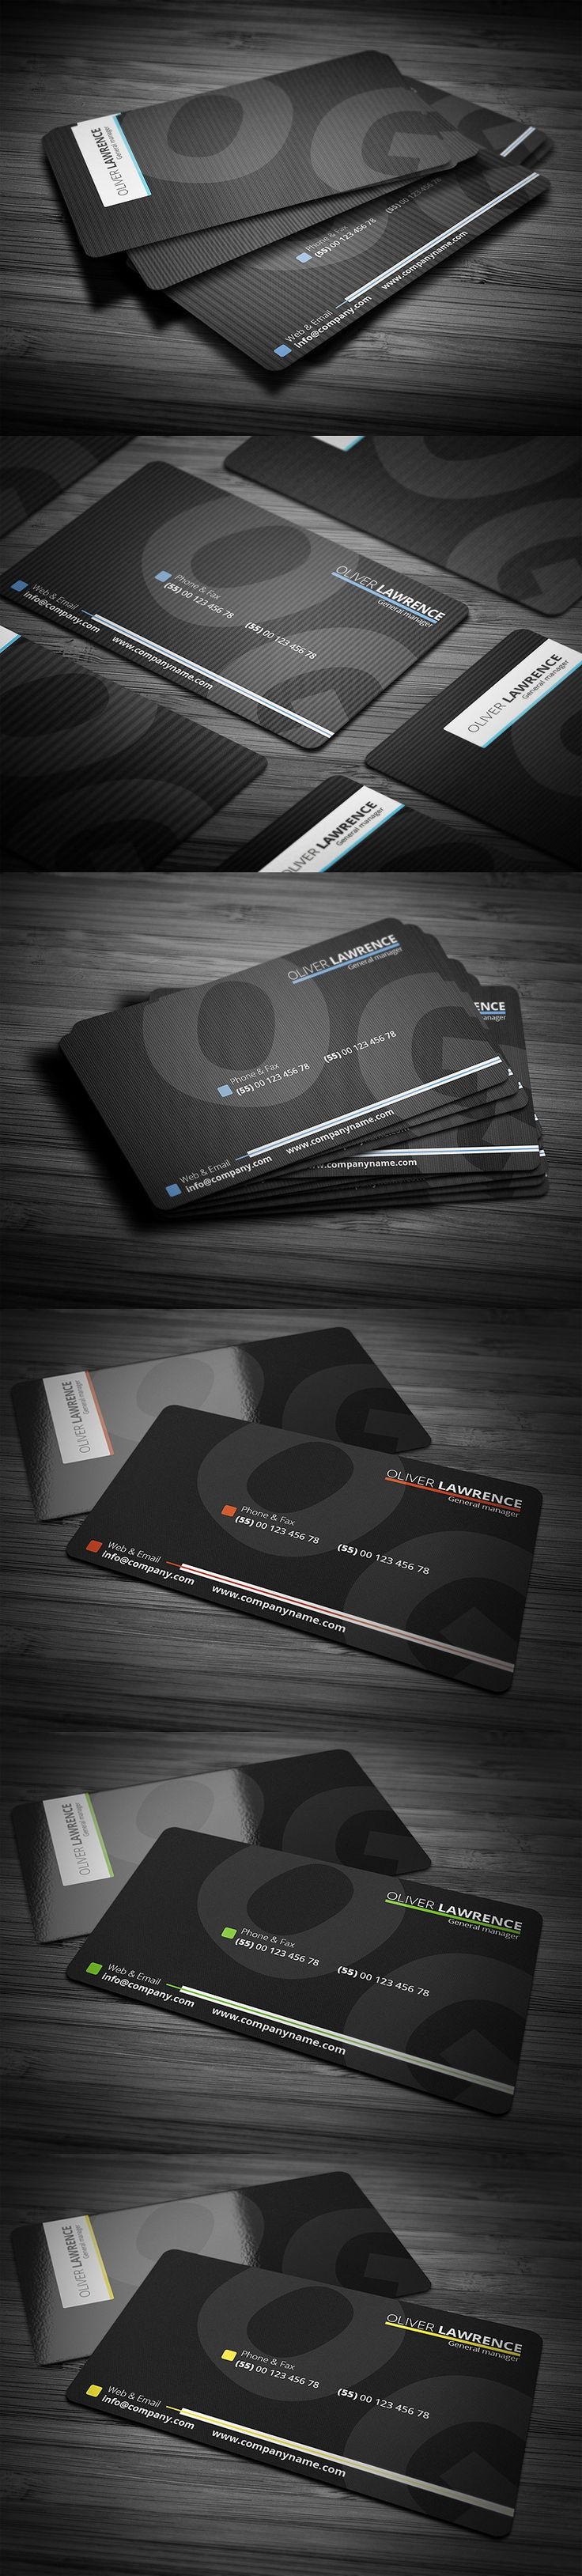 106 best business cards images on pinterest